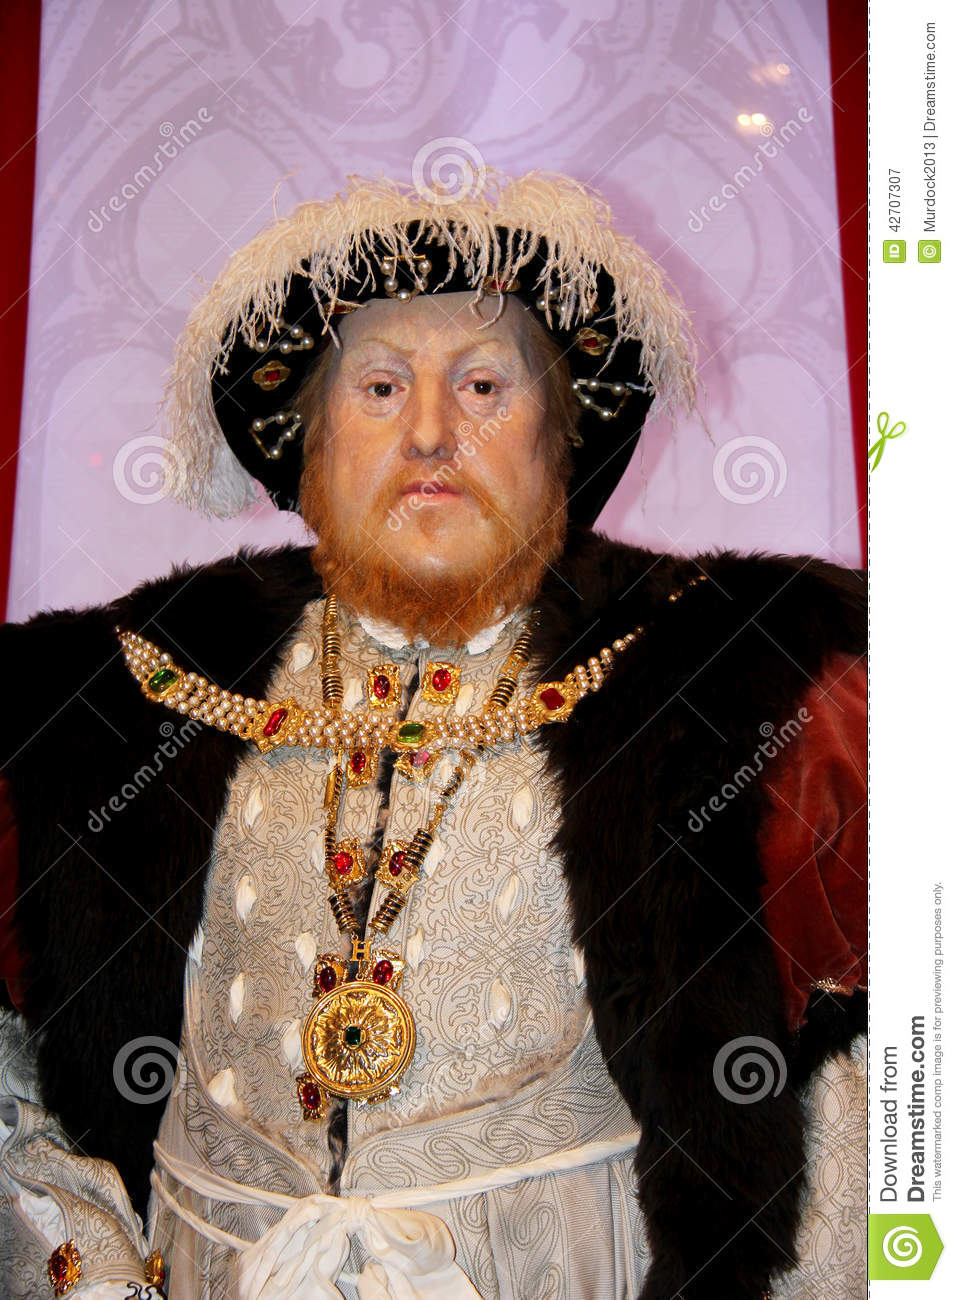 the life and times of henry viii of england Find helpful customer reviews and review ratings for life and times of henry viii (kings & queens of england)  life and times of henry viii (kings & queens of england) by robert lacey format: hardcover change write a review see all buying options.